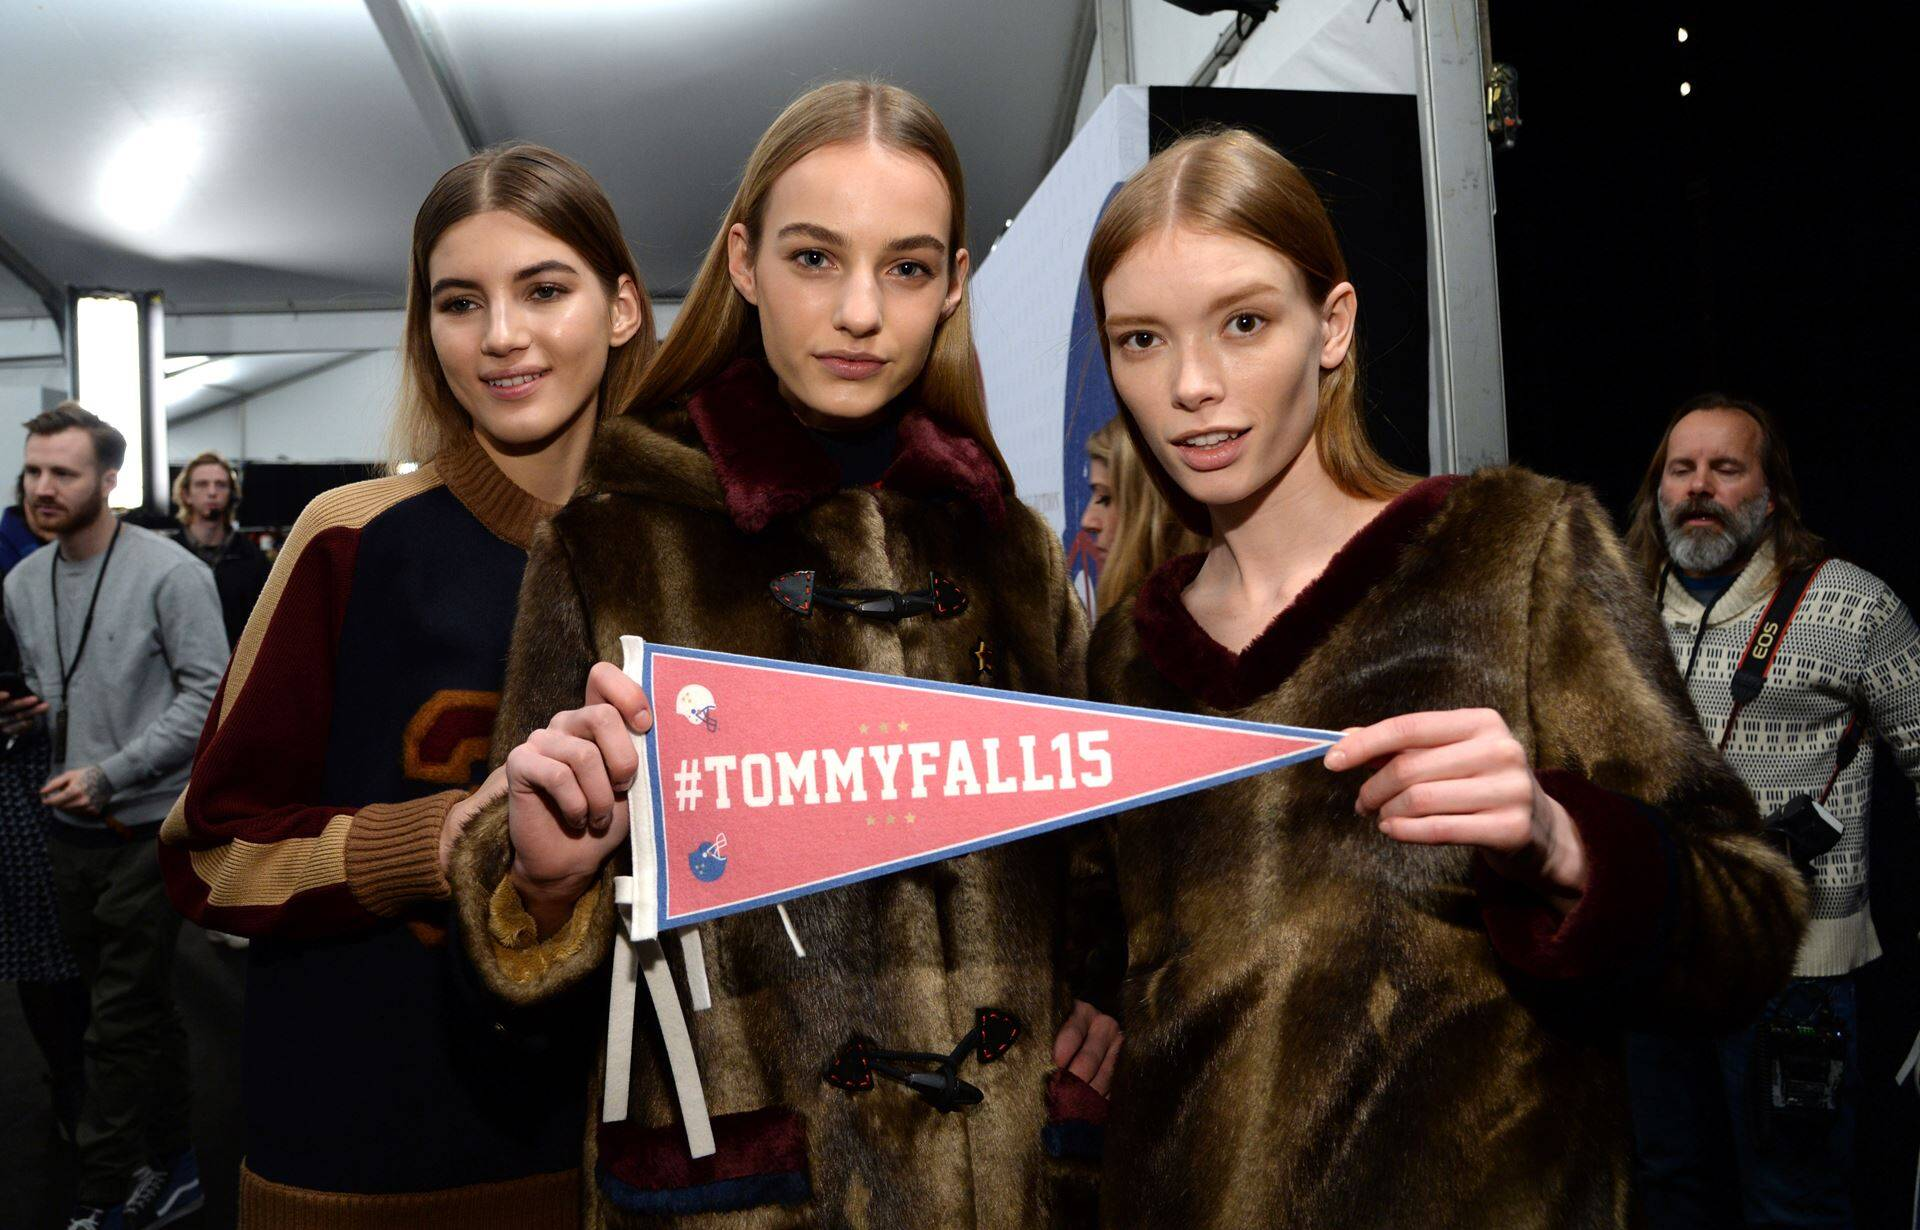 Tommy Hilfiger Backstage Women Models